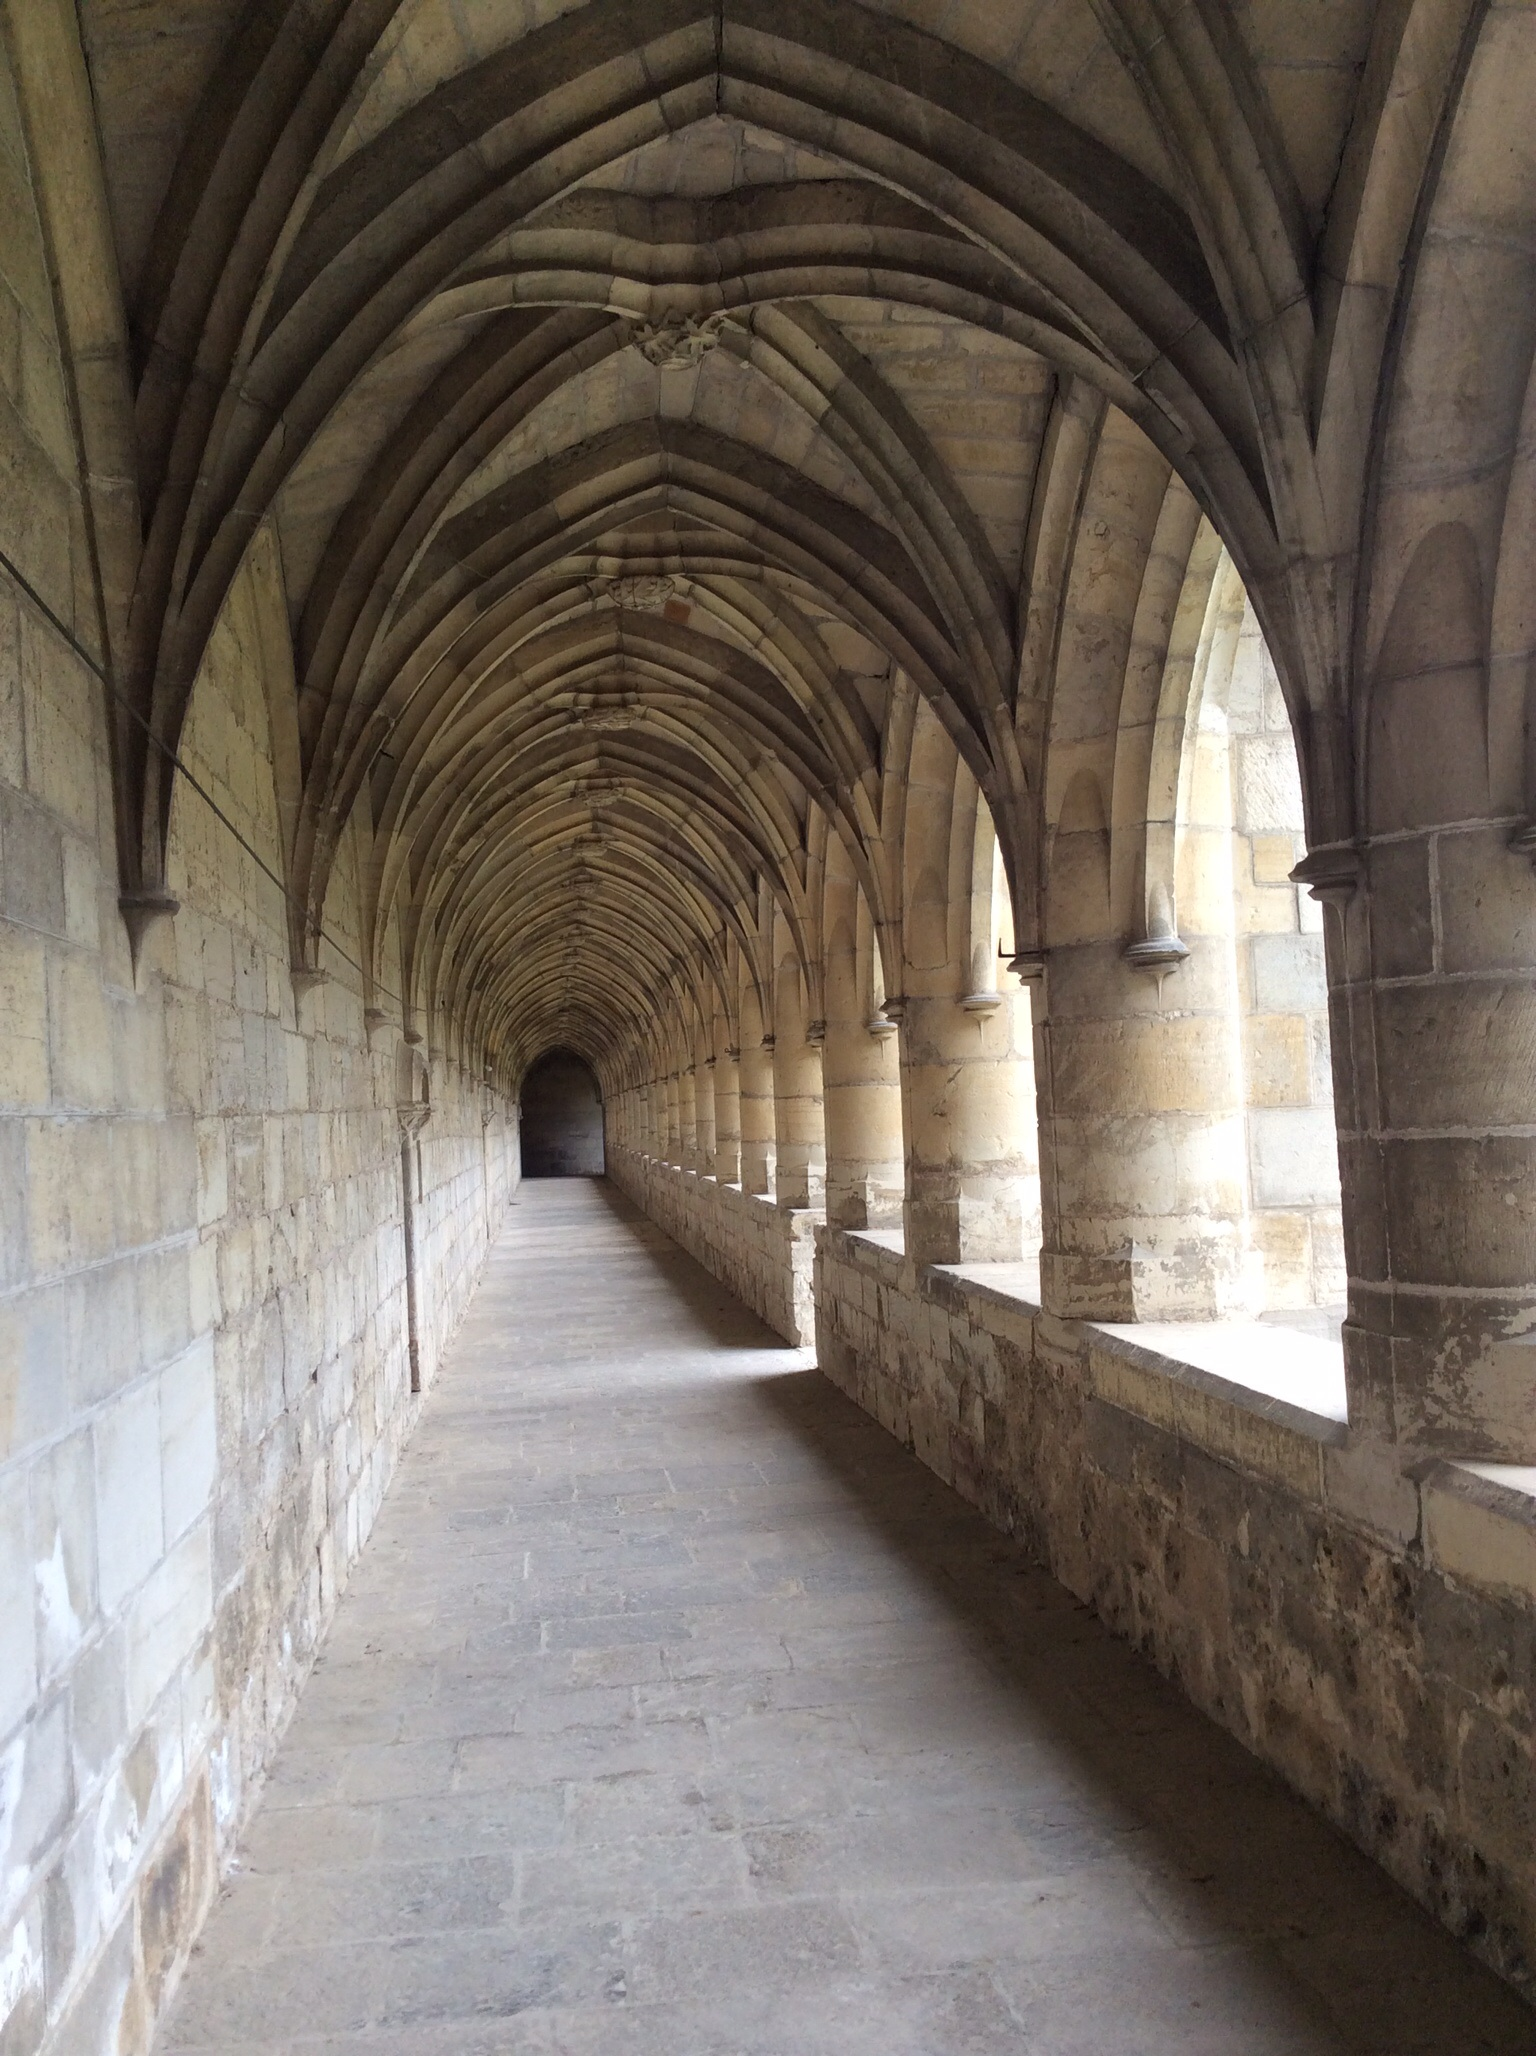 This walk, goes all around the green space, and is called the ambulatory and is where the monks walked. They were, at death, buried in the green space.